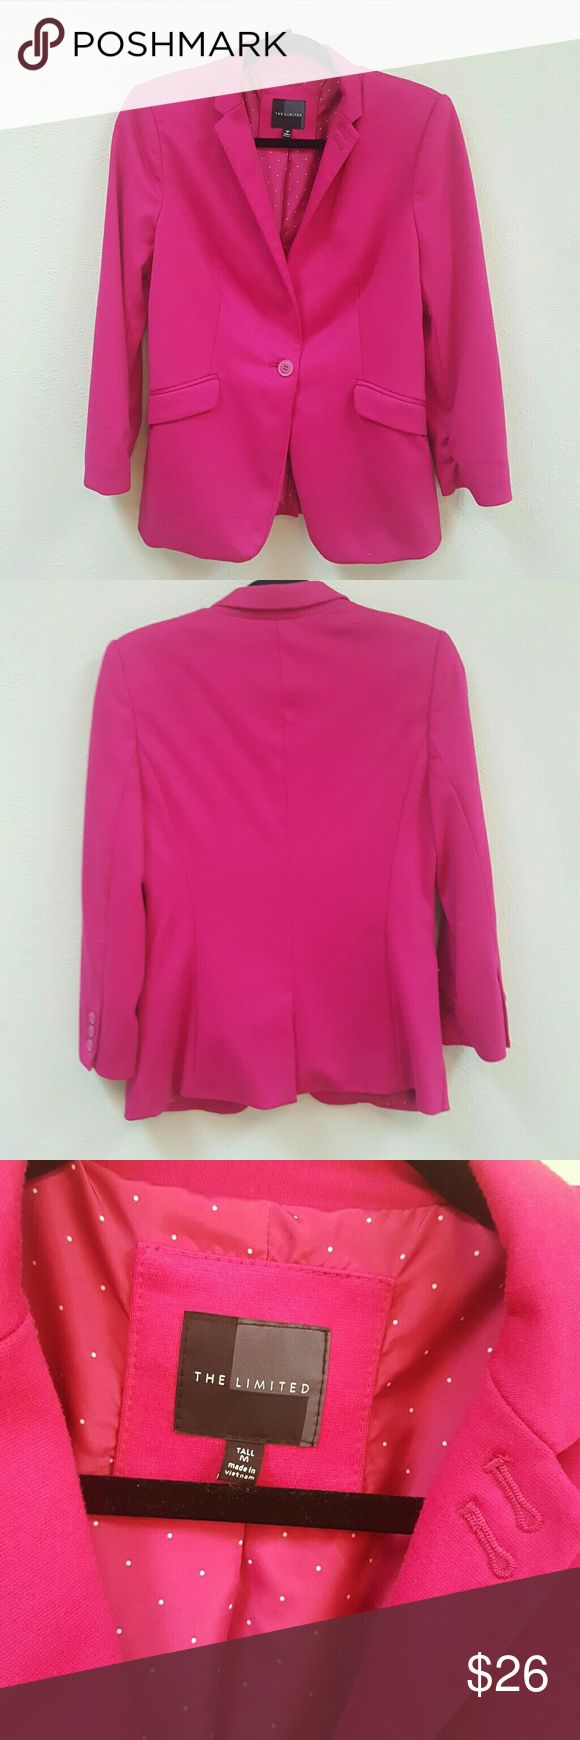 Hot Pink The Limited Brand Blazer Statement piece! This hot pink blazer is perfect for spring! Size is Medium Tall. There is some padding in the shoulders. Adorable! The Limited Jackets & Coats Blazers